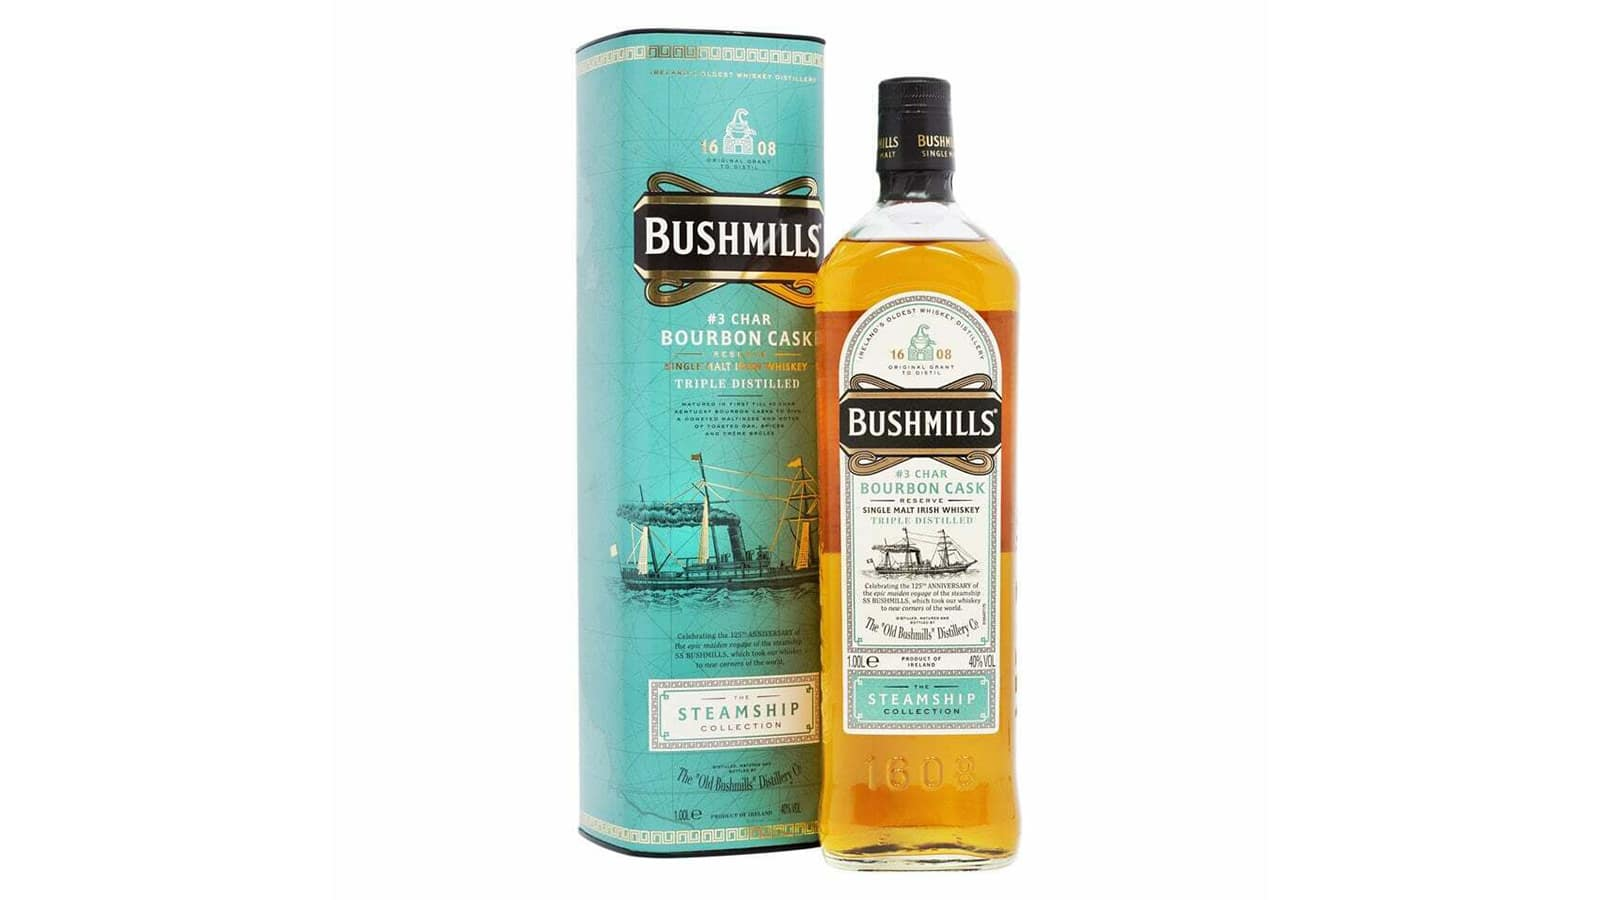 Bushmills Steamship Collection N.3 Charred Bourbon Cask